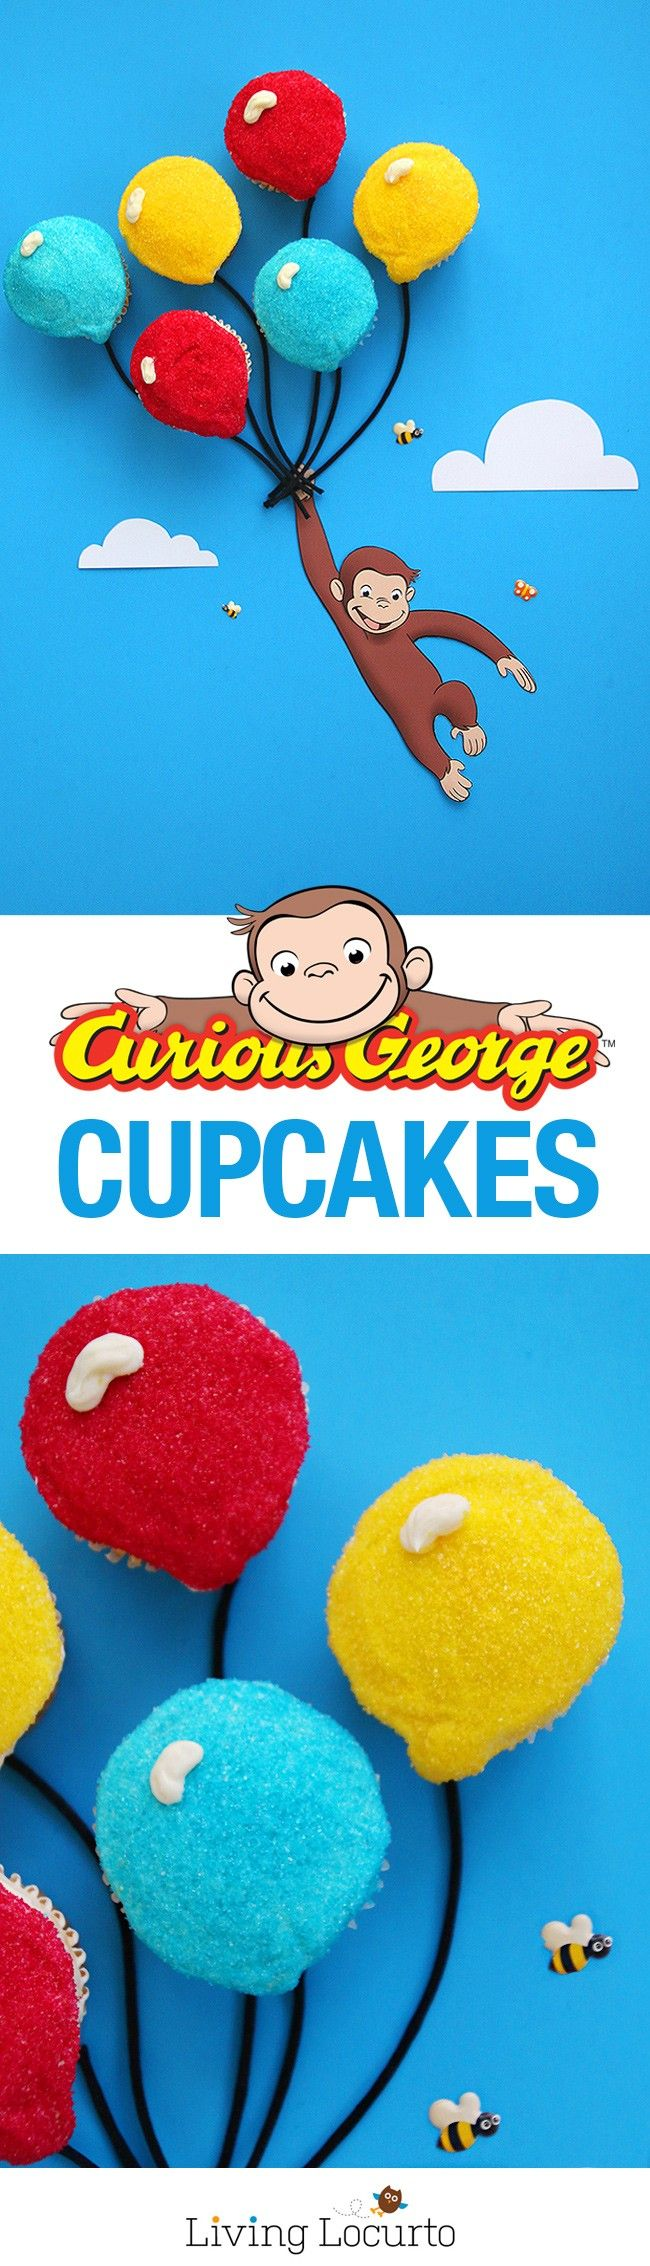 How to make the cutest Curious George Balloon Cupcakes! Click to get the recipe directions and free printable monkey to prepare this adorable cake party idea for your birthday or school class parties. Cute fun food Curious George party idea for kids! You can watch all 9 seasons of Curious George on Hulu. It's my favorite kids show! Cupcakes by LivingLocurto.com #CuriousGeorgeonHulu ad: